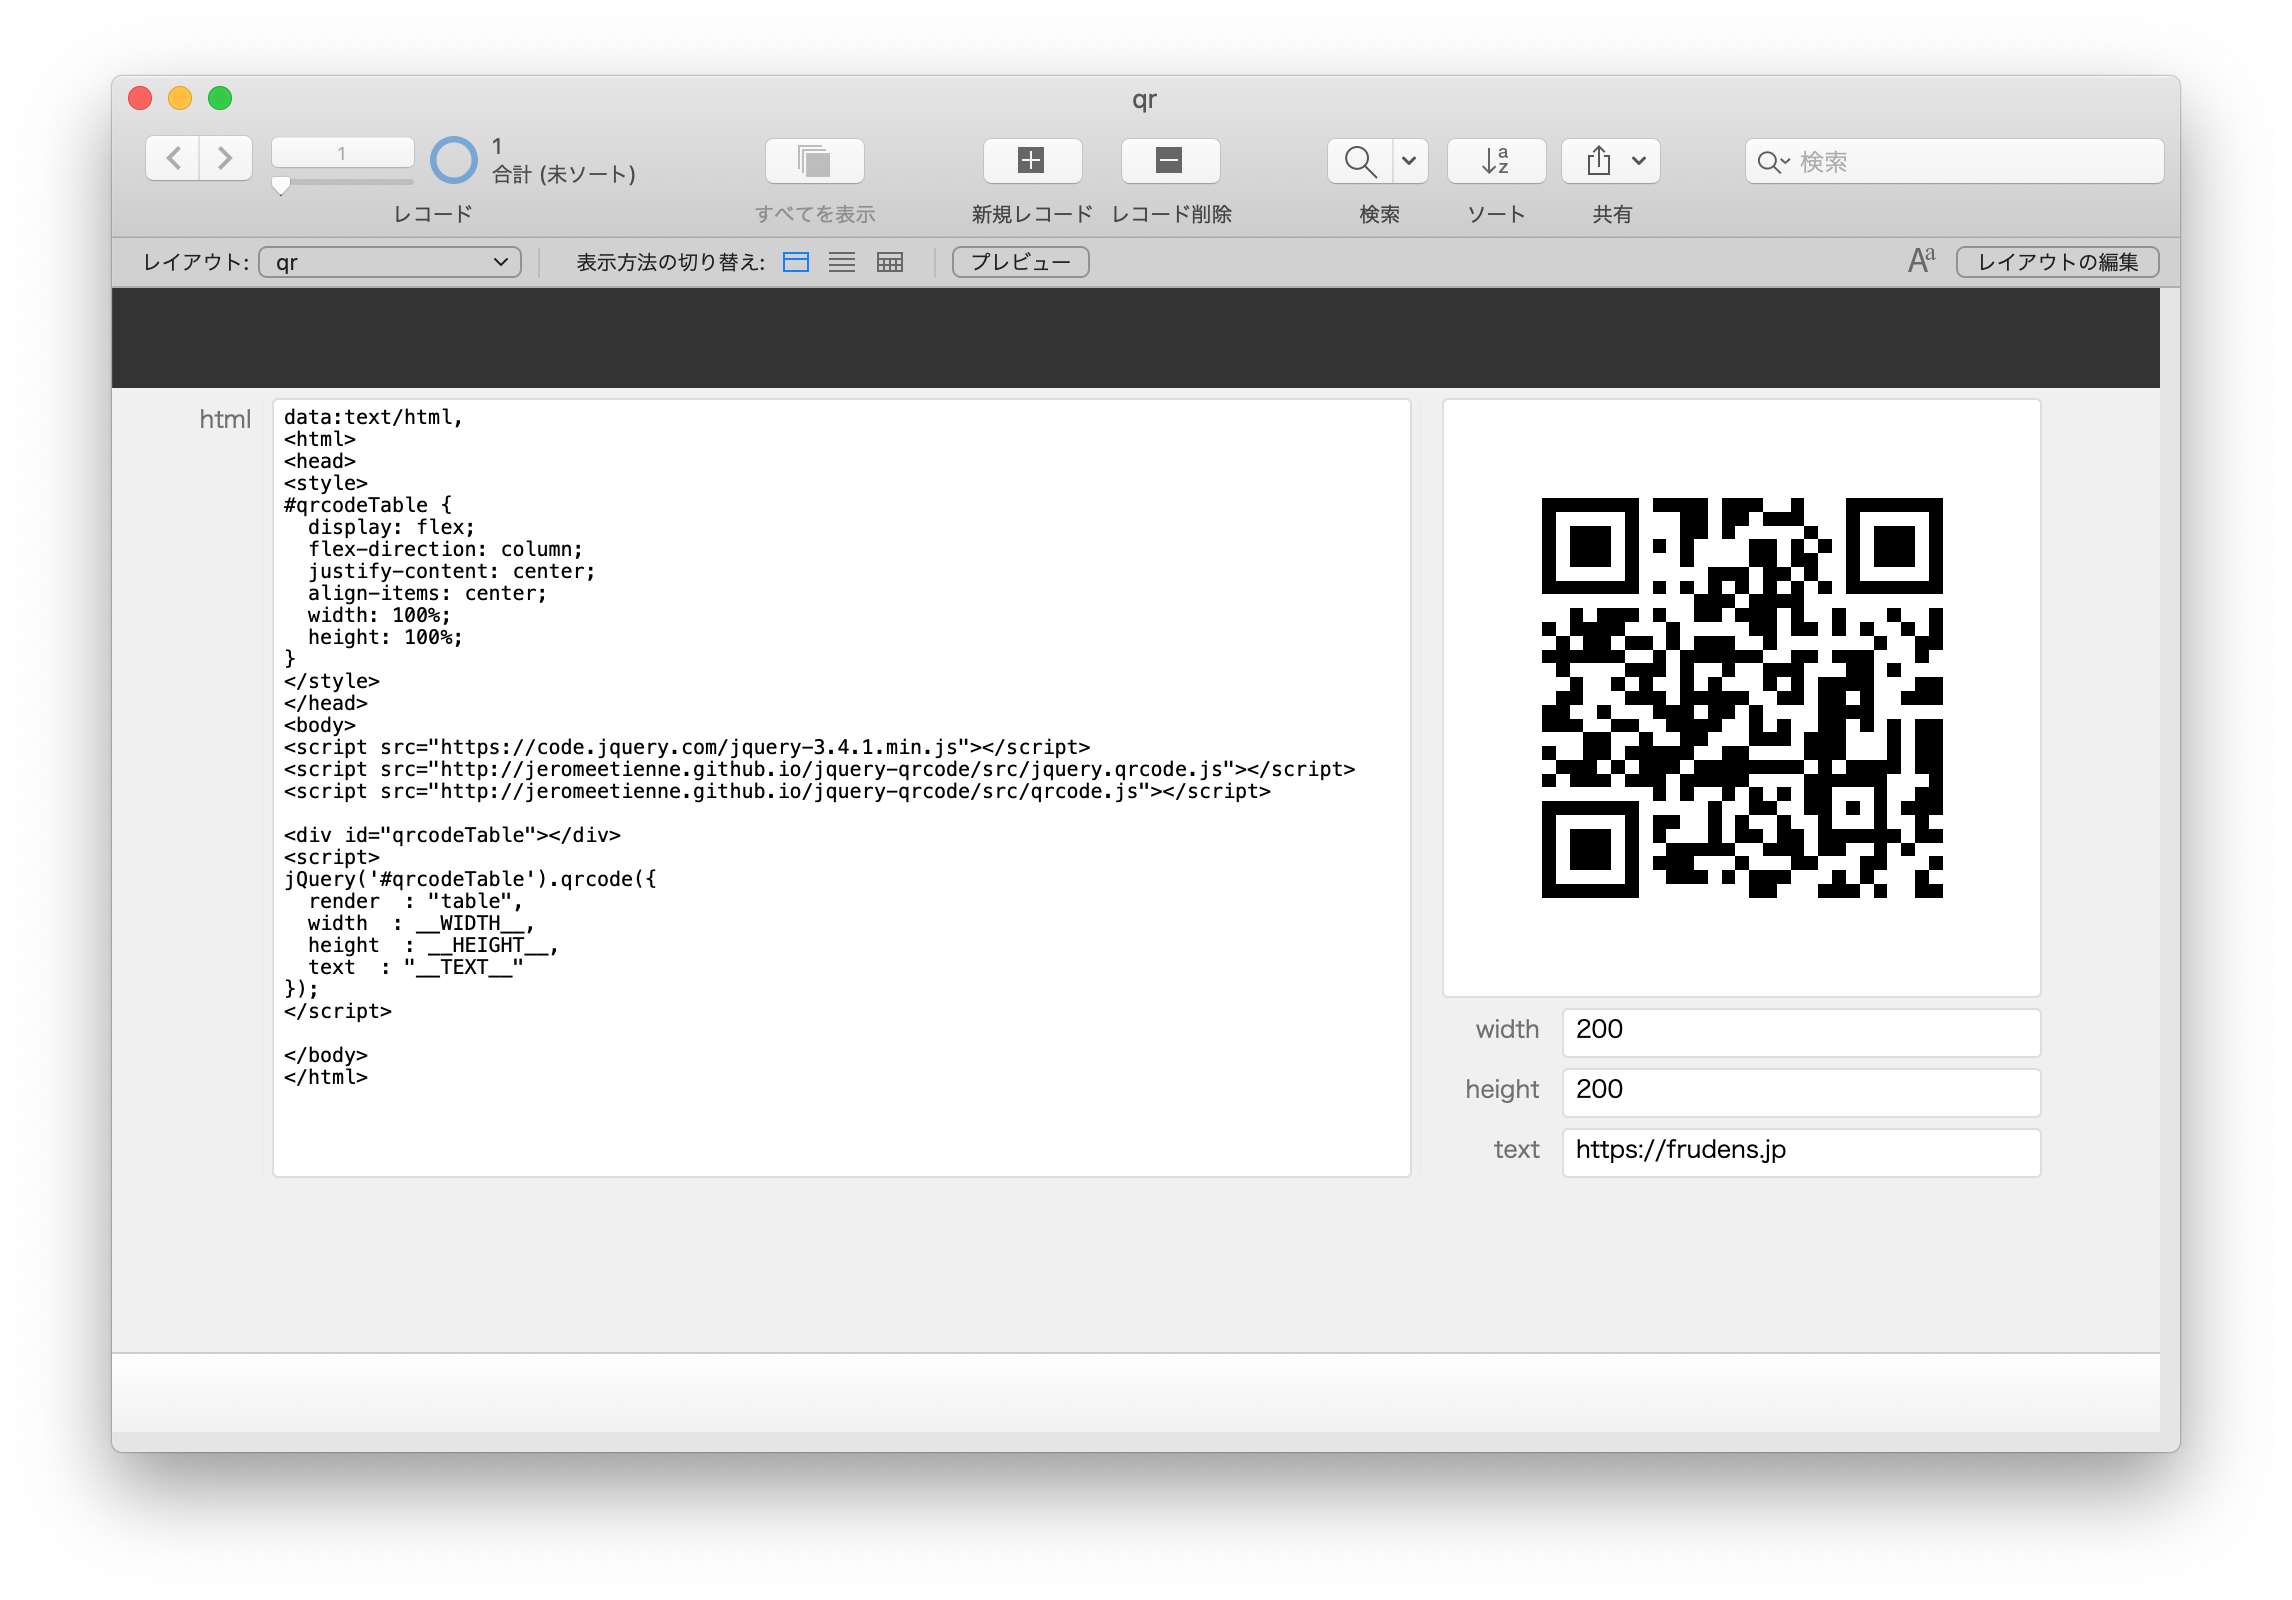 filemaker-simple-qr-code-view-1